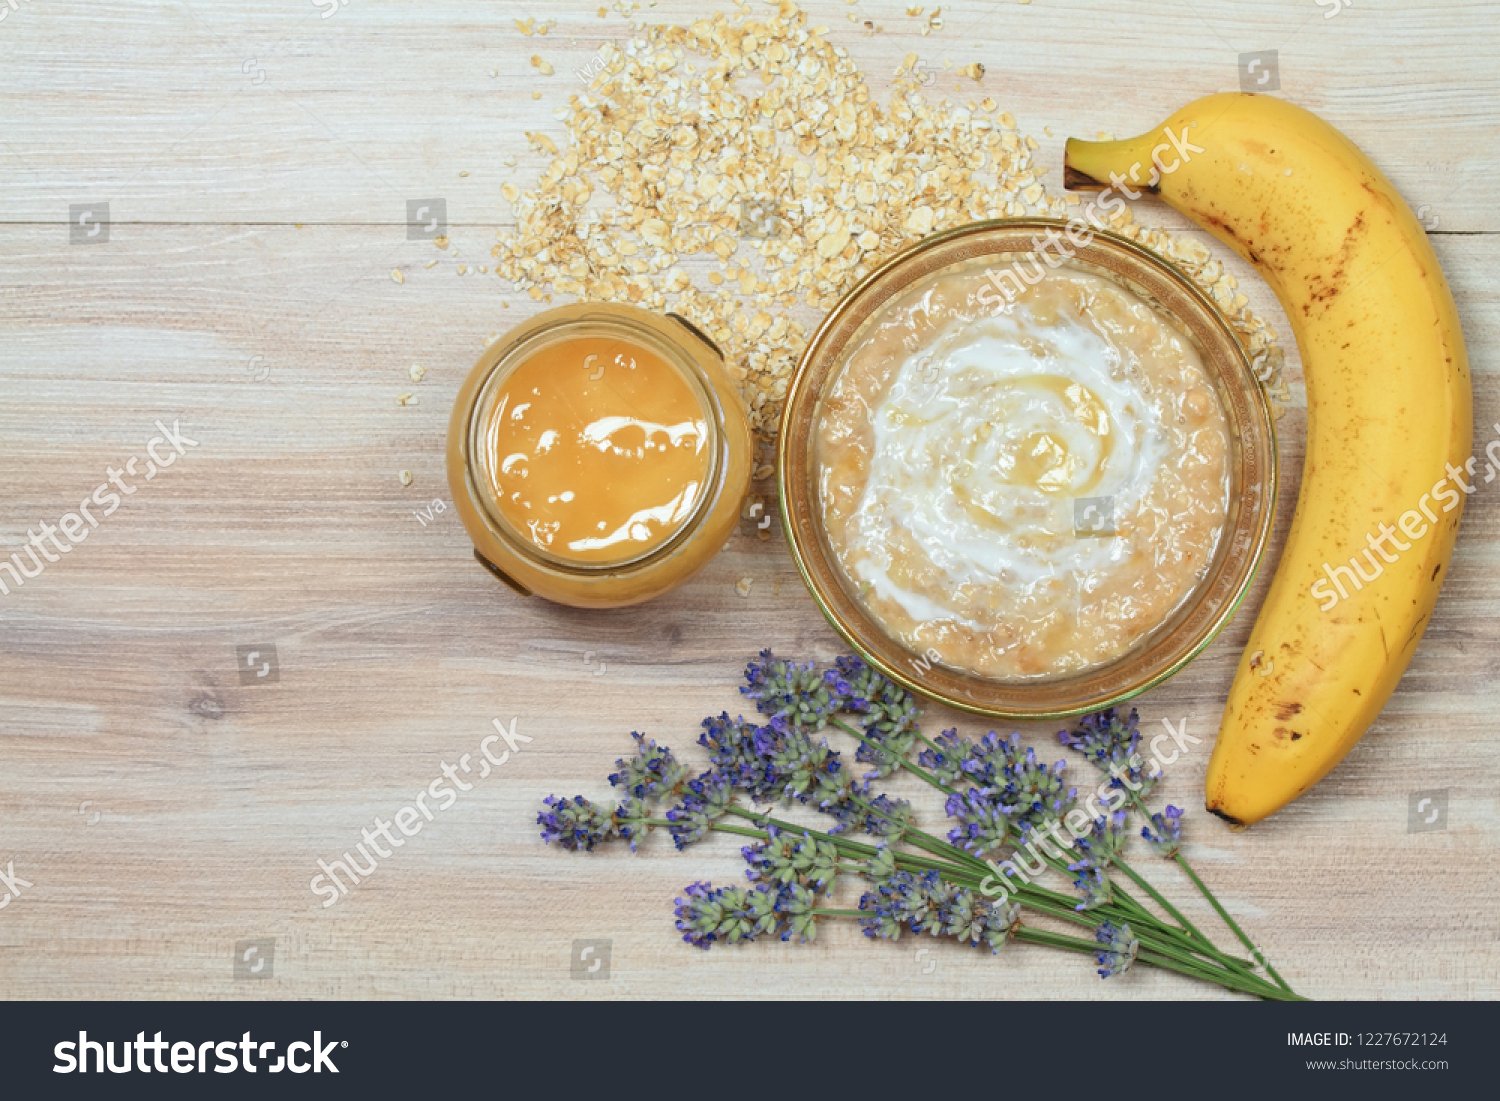 Face mask from oatmeal, yogurt, banana and honey. Ingredients for homemade facial mask